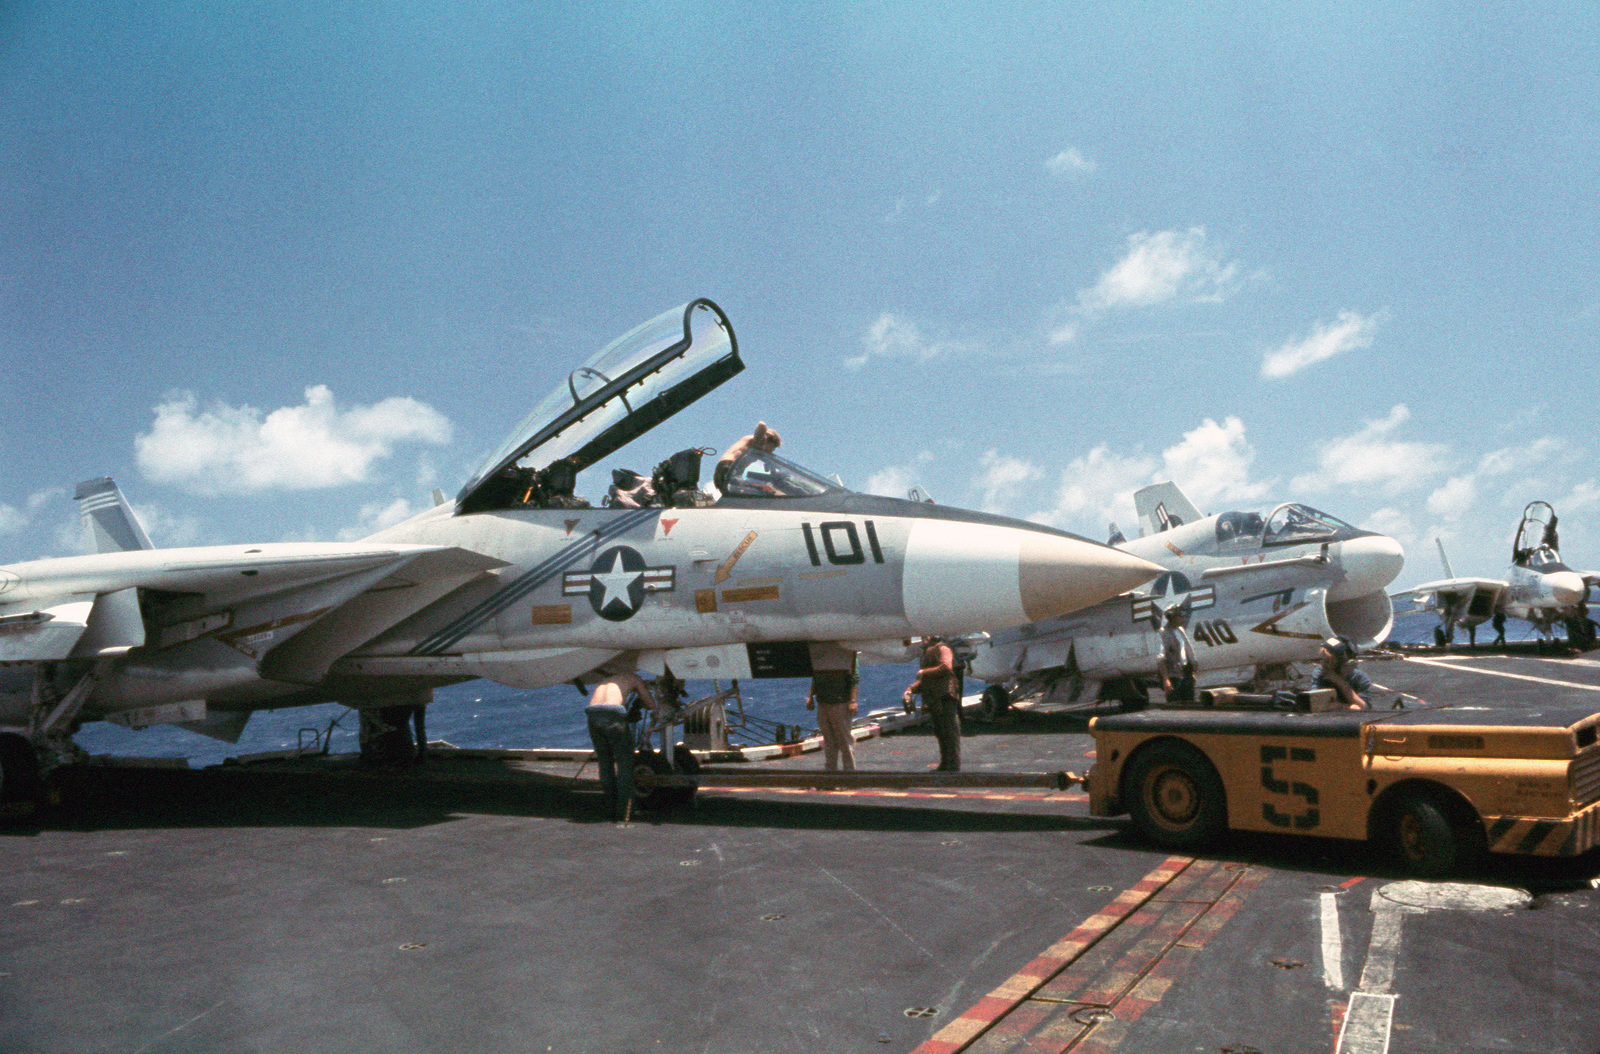 An MD-3A tow tractor stands by to maneuver an F-14A Tomcat aircraft on the flight deck of the aircraft carrier USS AMERICA (CV 66)